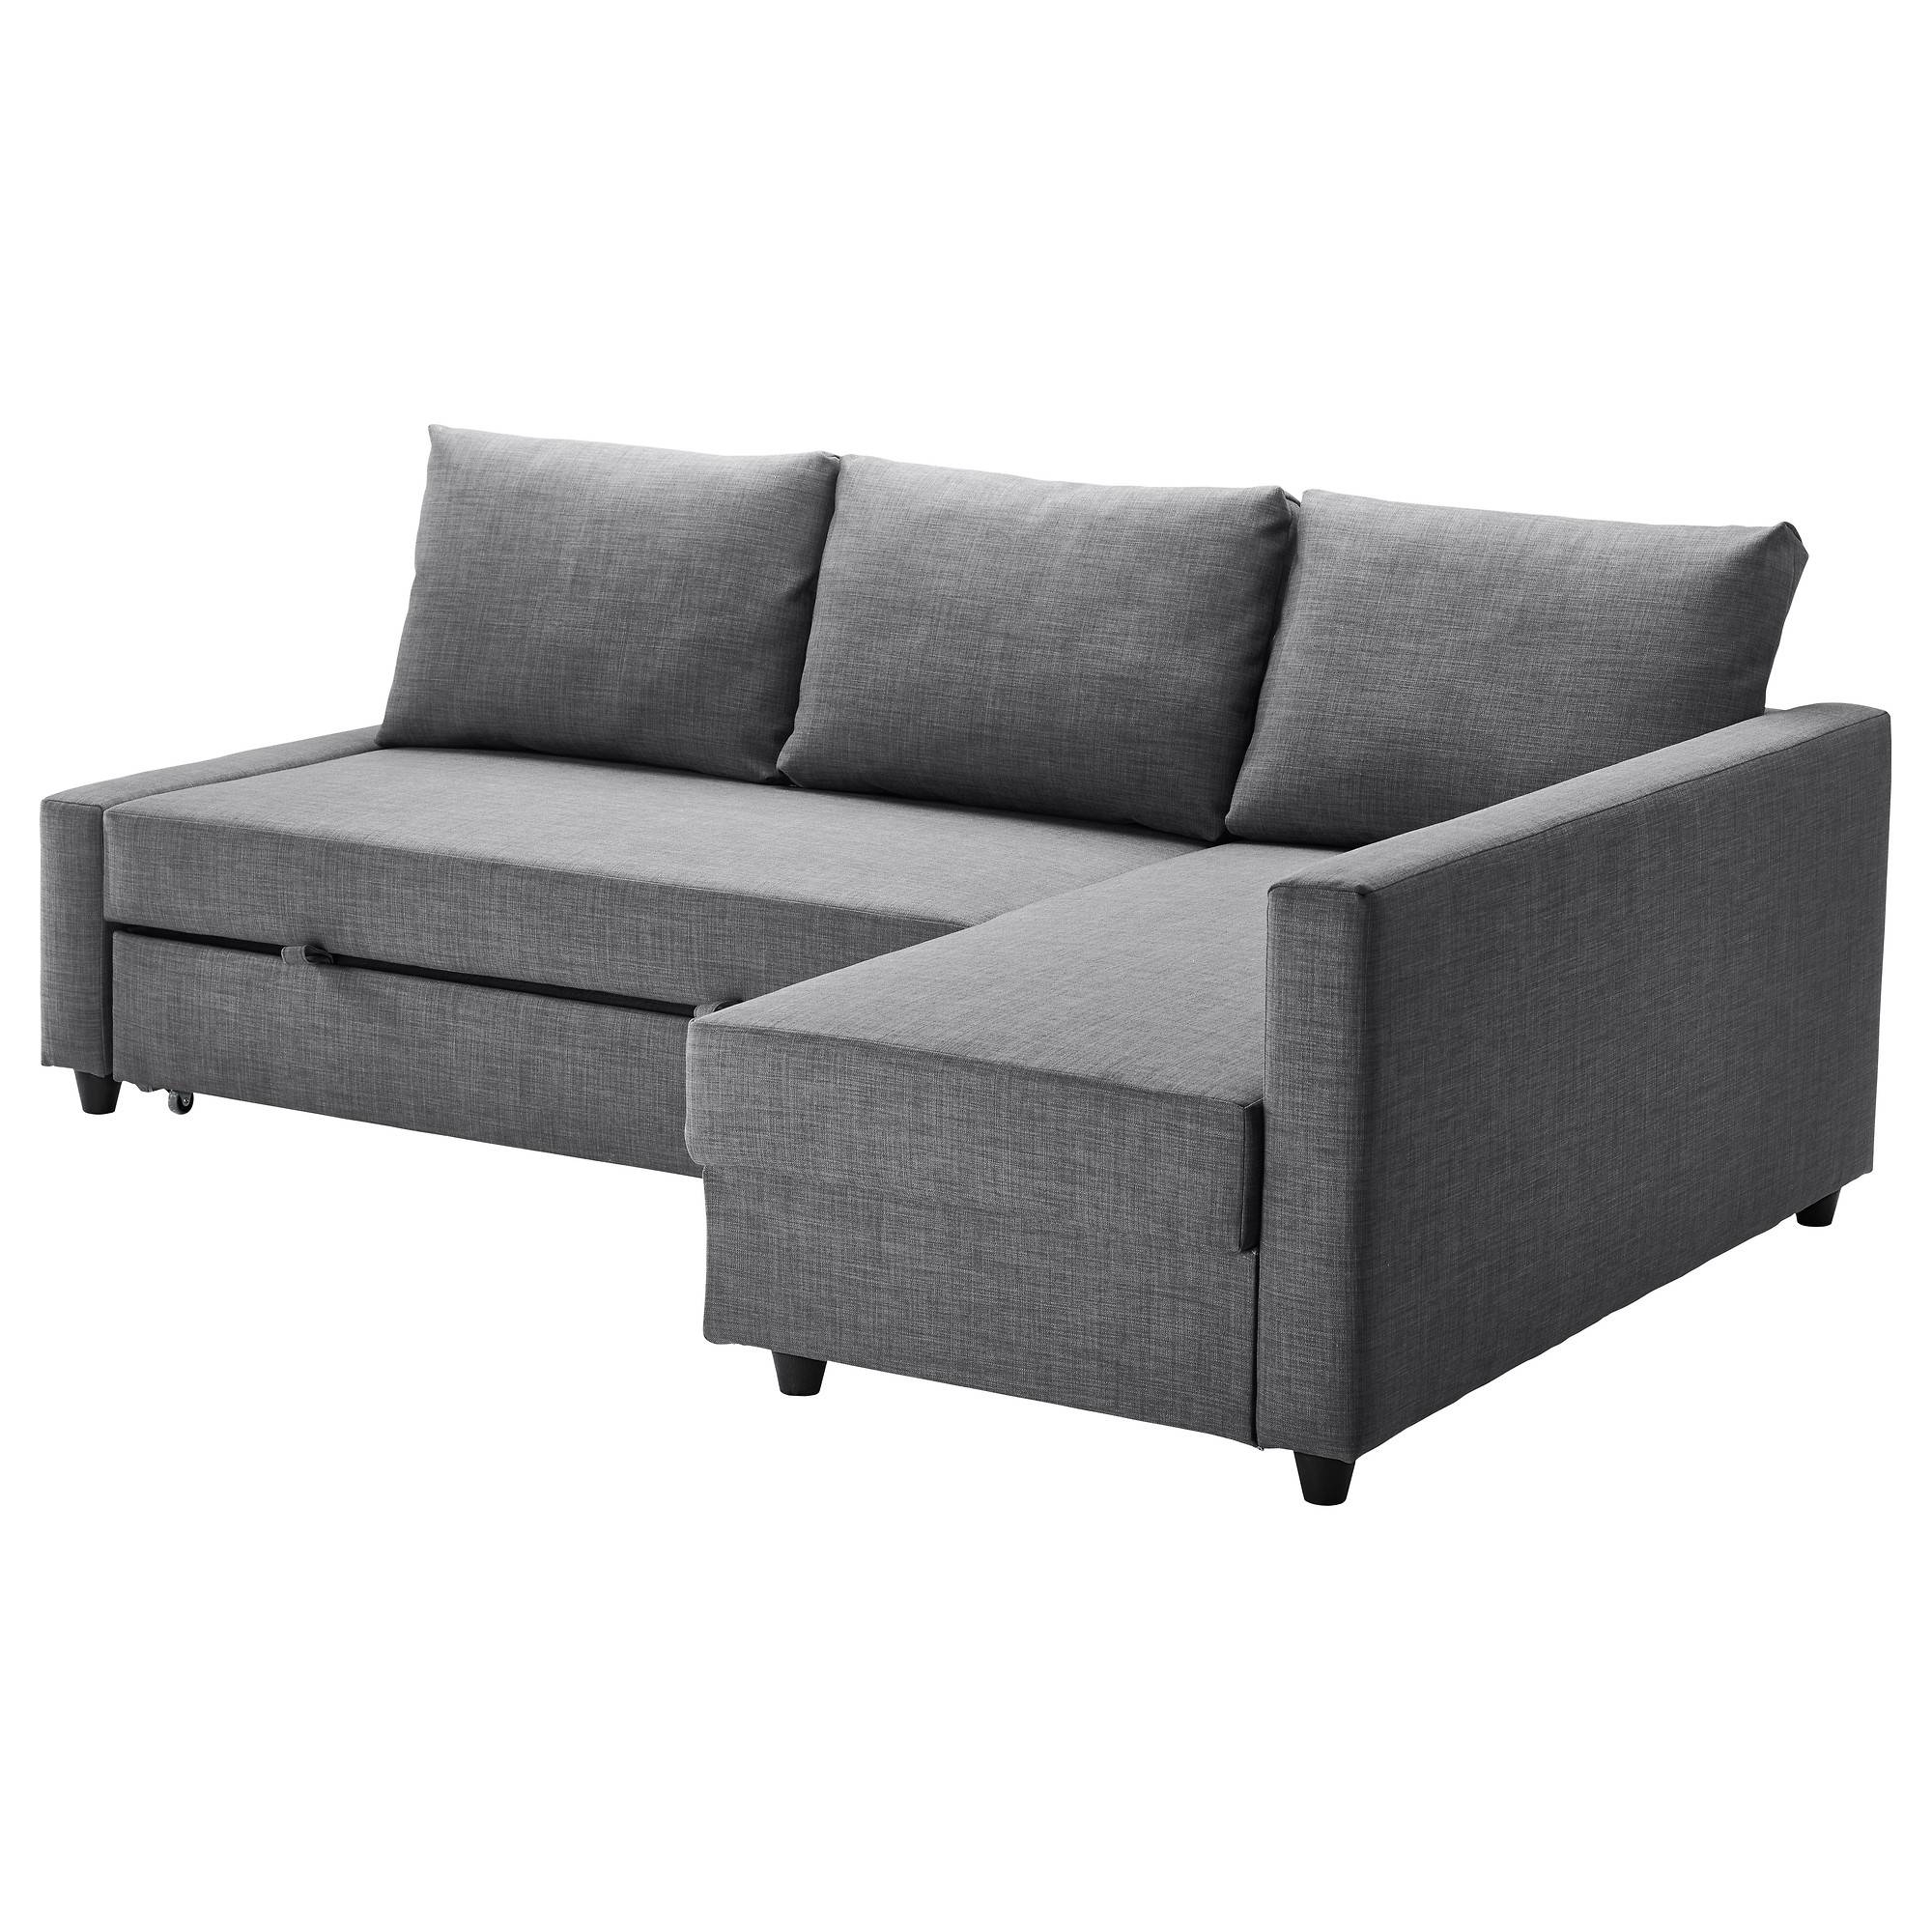 Friheten Corner Sofa-Bed With Storage Skiftebo Dark Grey - Ikea intended for Cheap Corner Sofa Beds (Image 11 of 30)